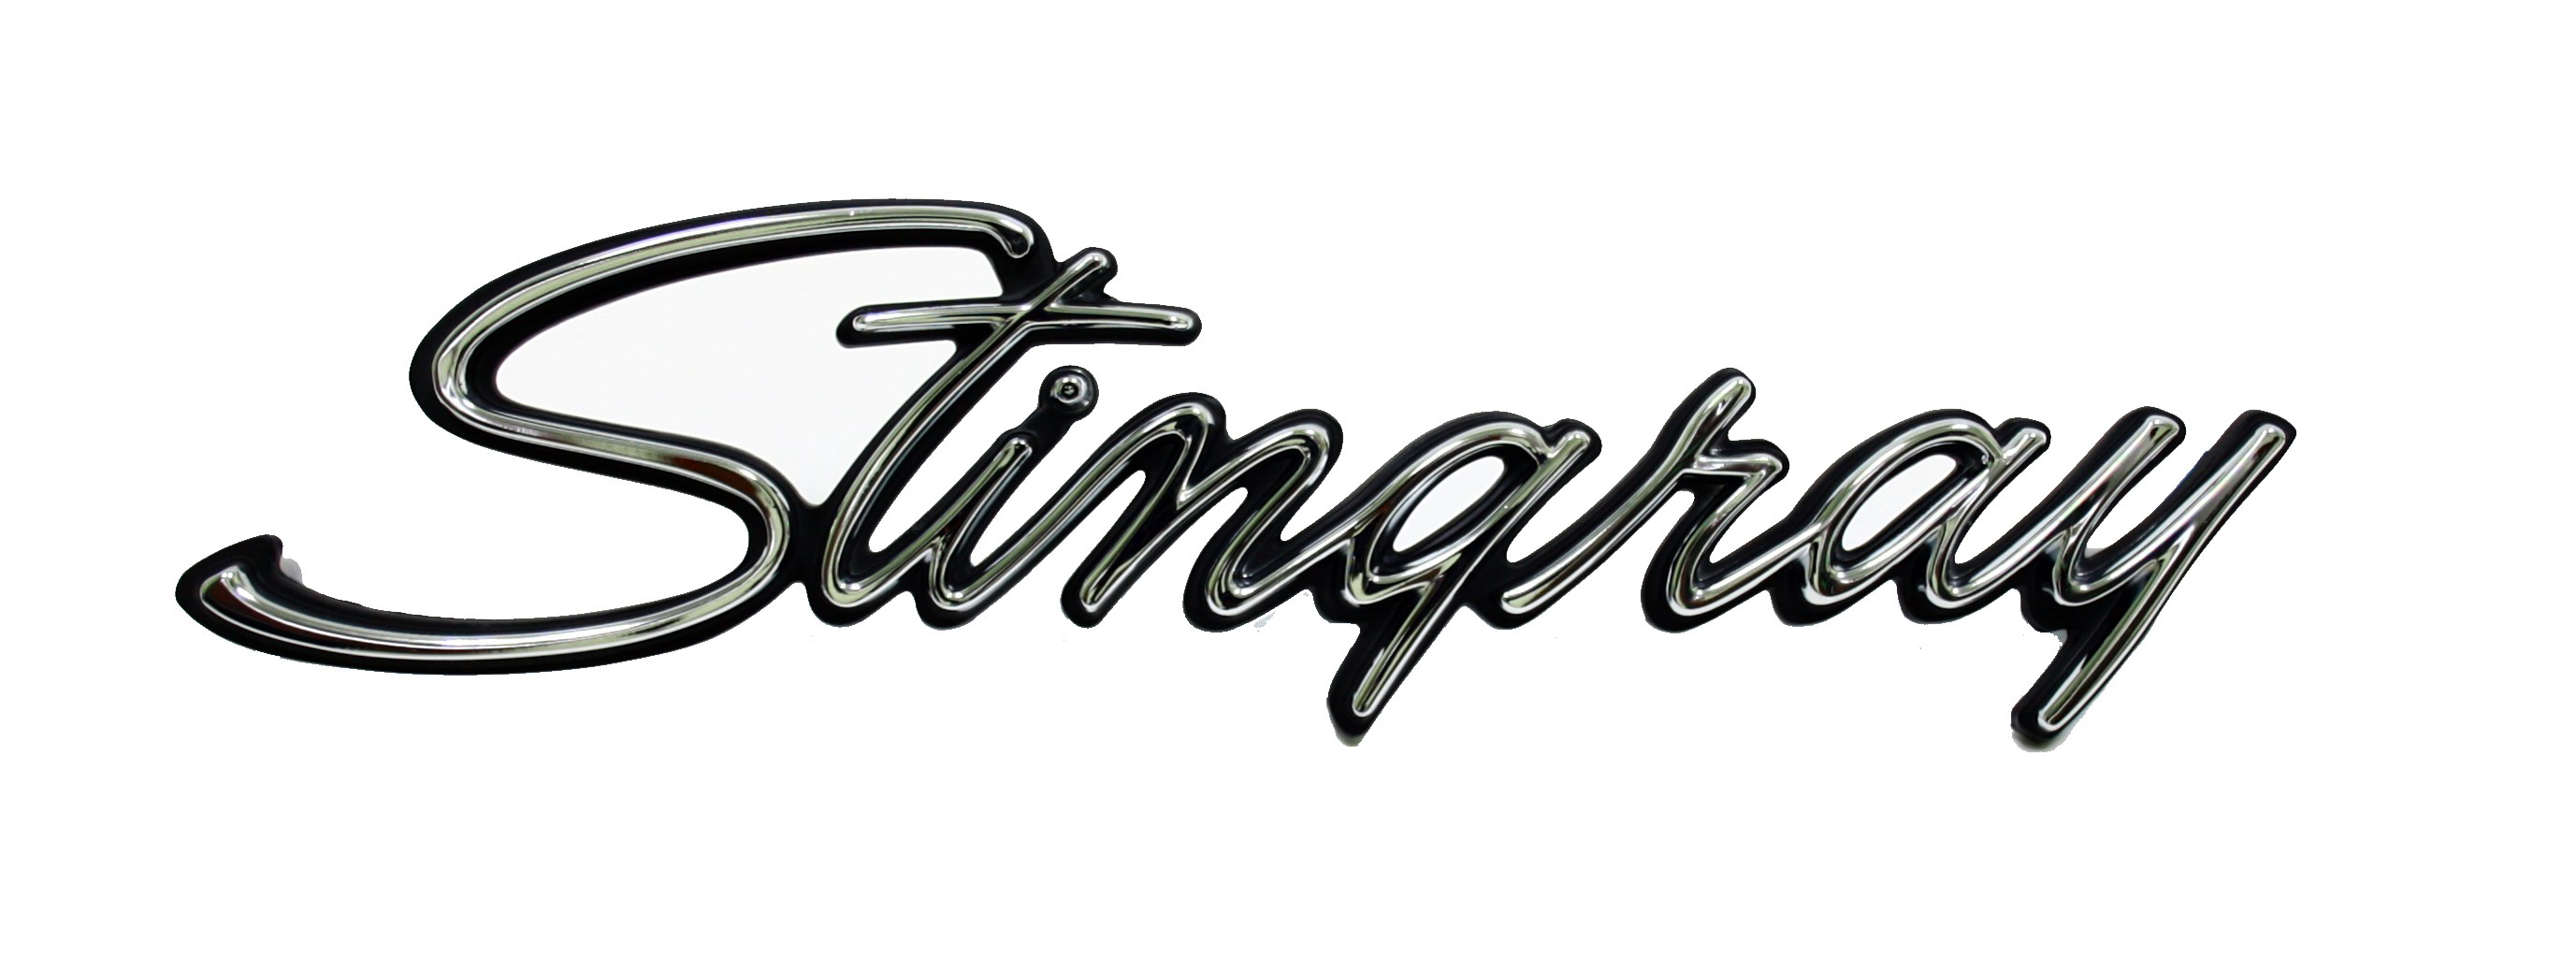 Corvette Side Emblem Stingray